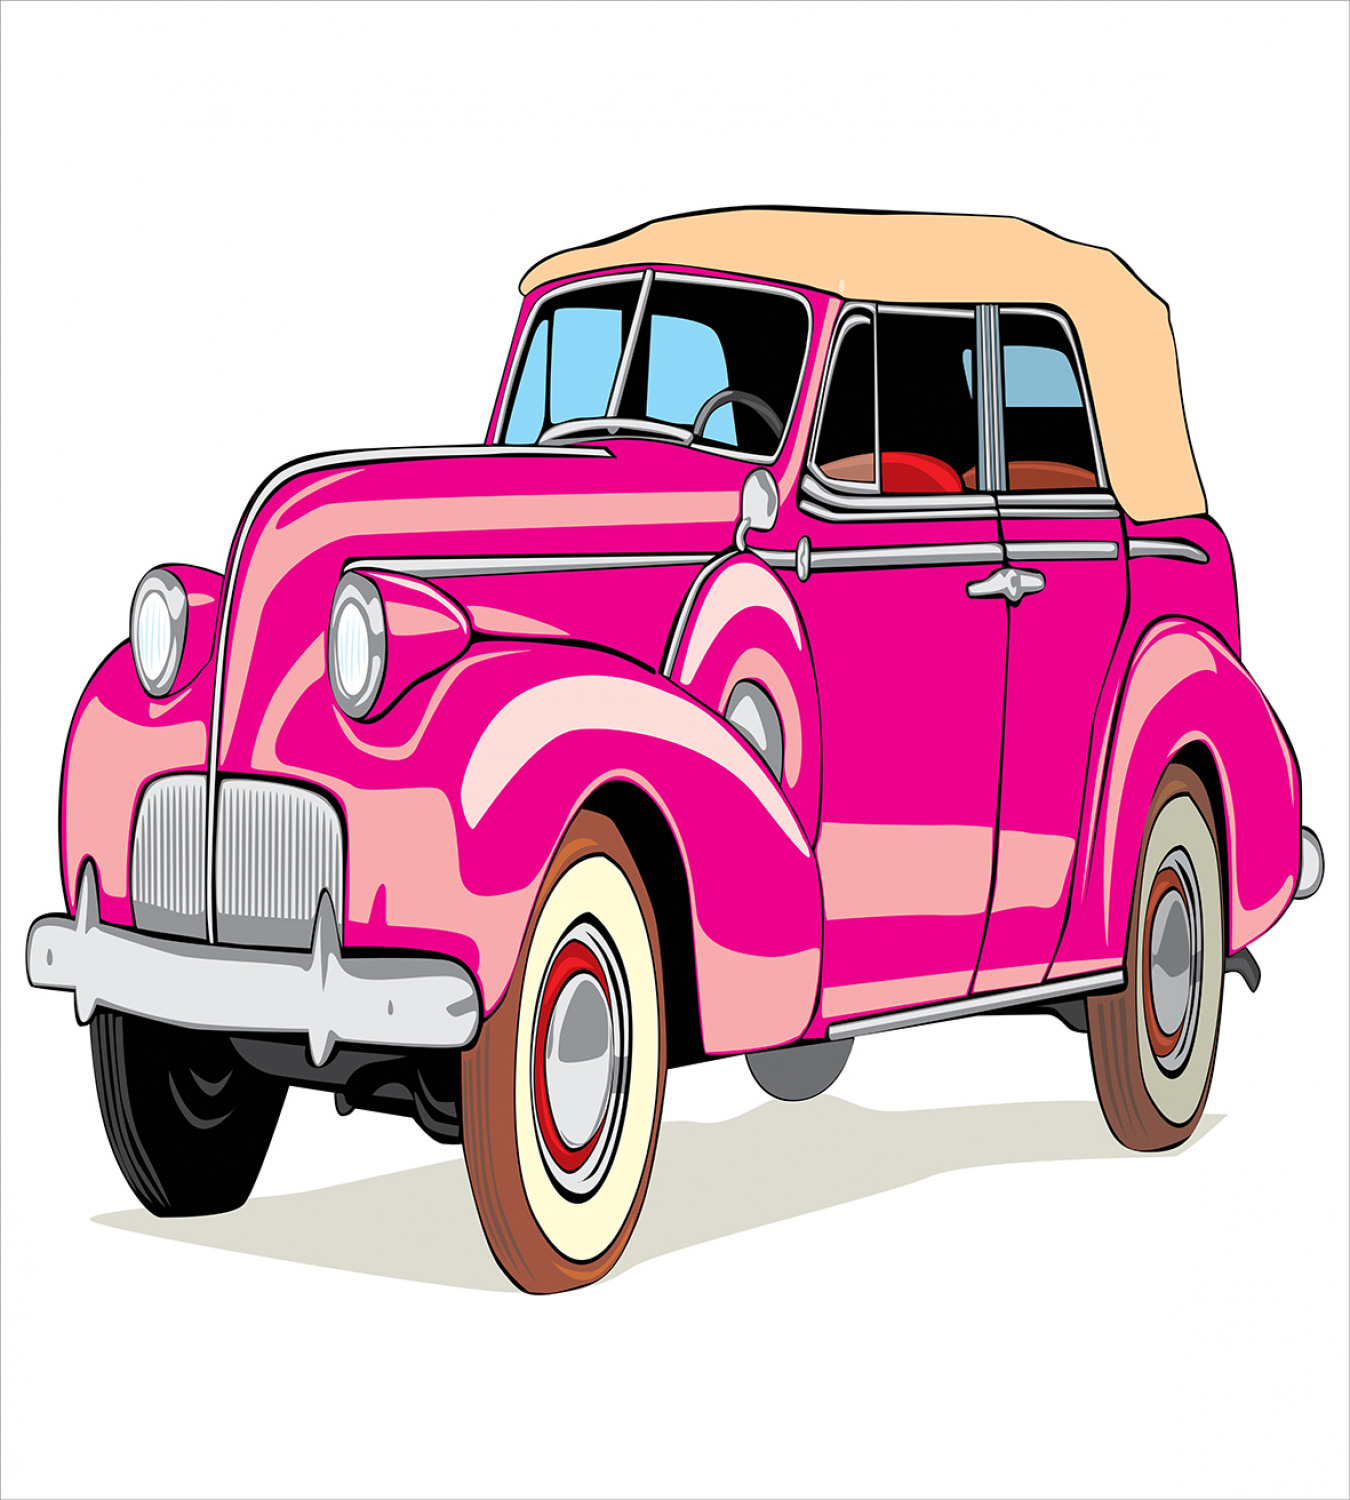 Colorful-Cars-Duvet-Cover-Set-Twin-Queen-King-Sizes-with-Pillow-Shams-Bedding miniature 35